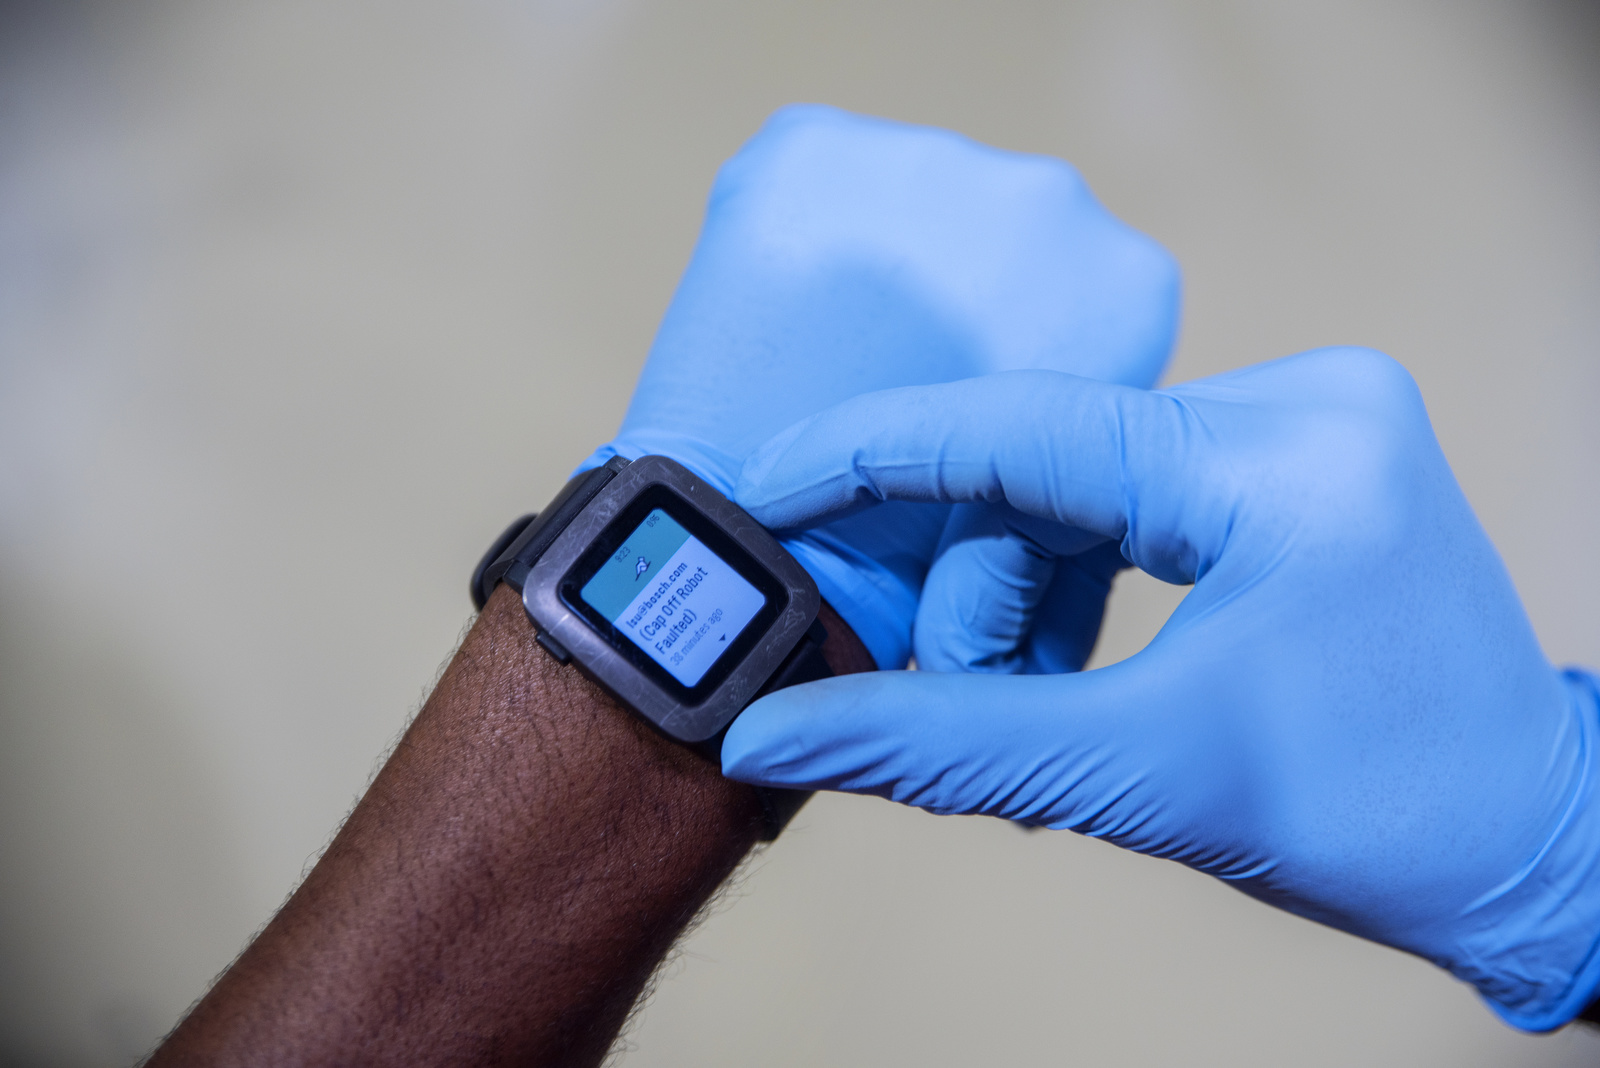 Smartwatches at Anderson plant, USA